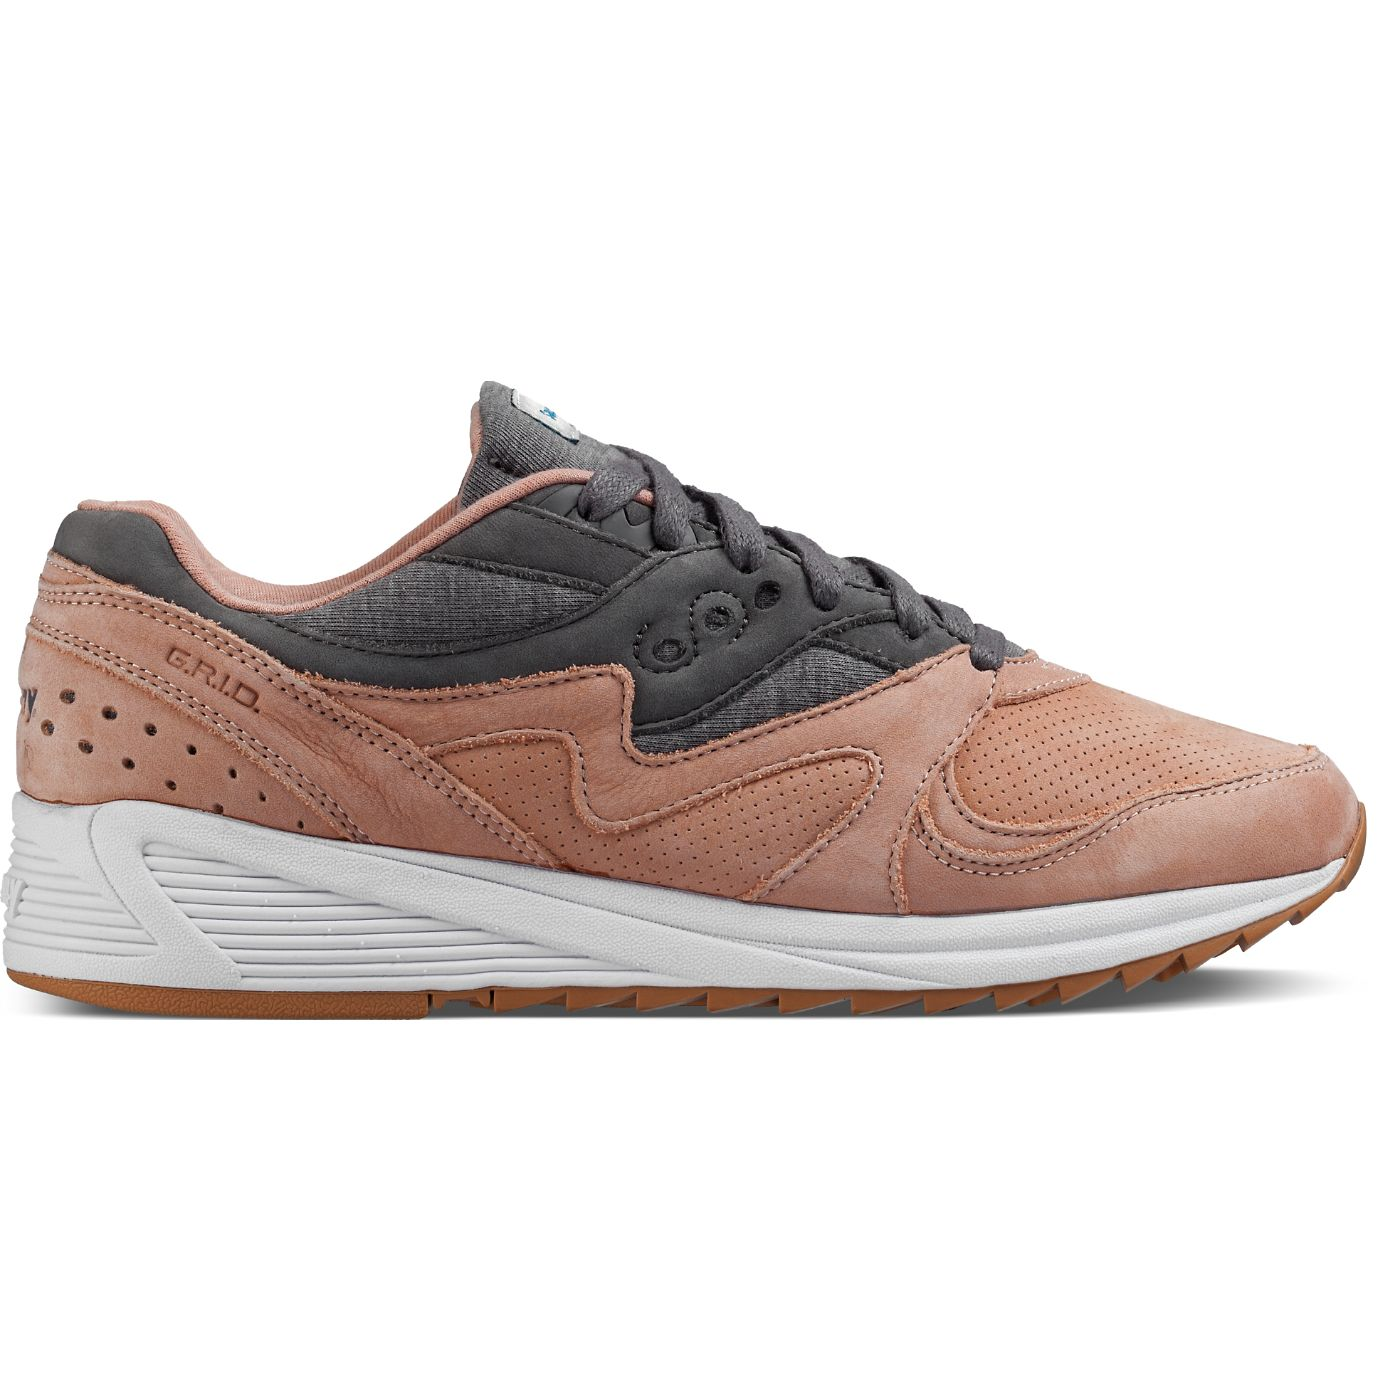 Saucony Sneakers Mens GRID 8000 S70303-3 by Saucony